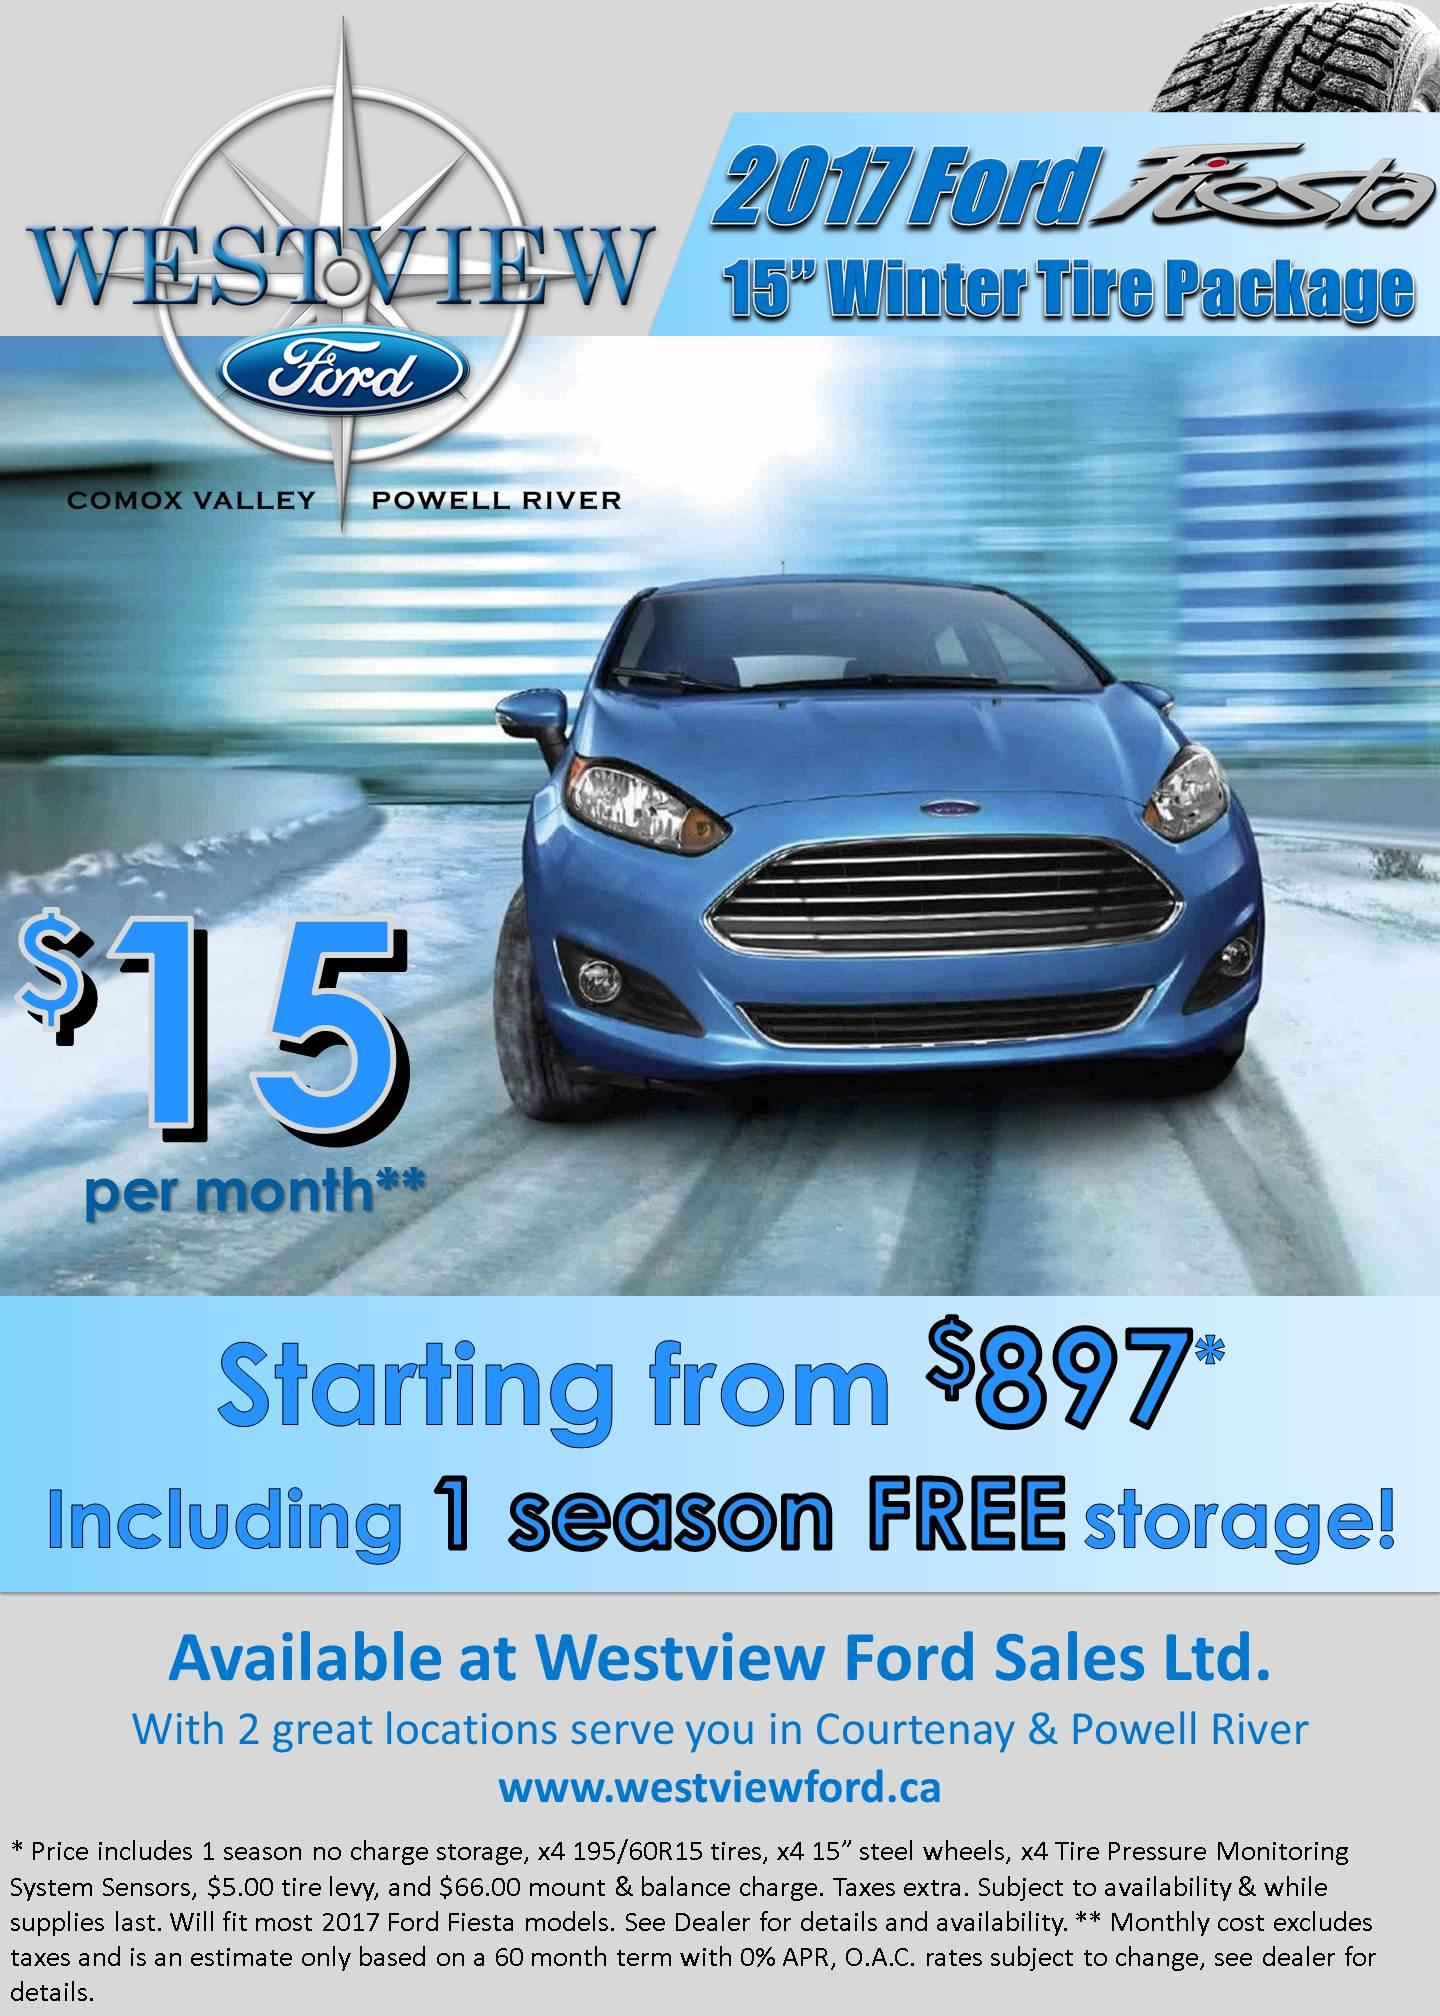 2017 Fiesta Winter Safety Package - Westview Ford